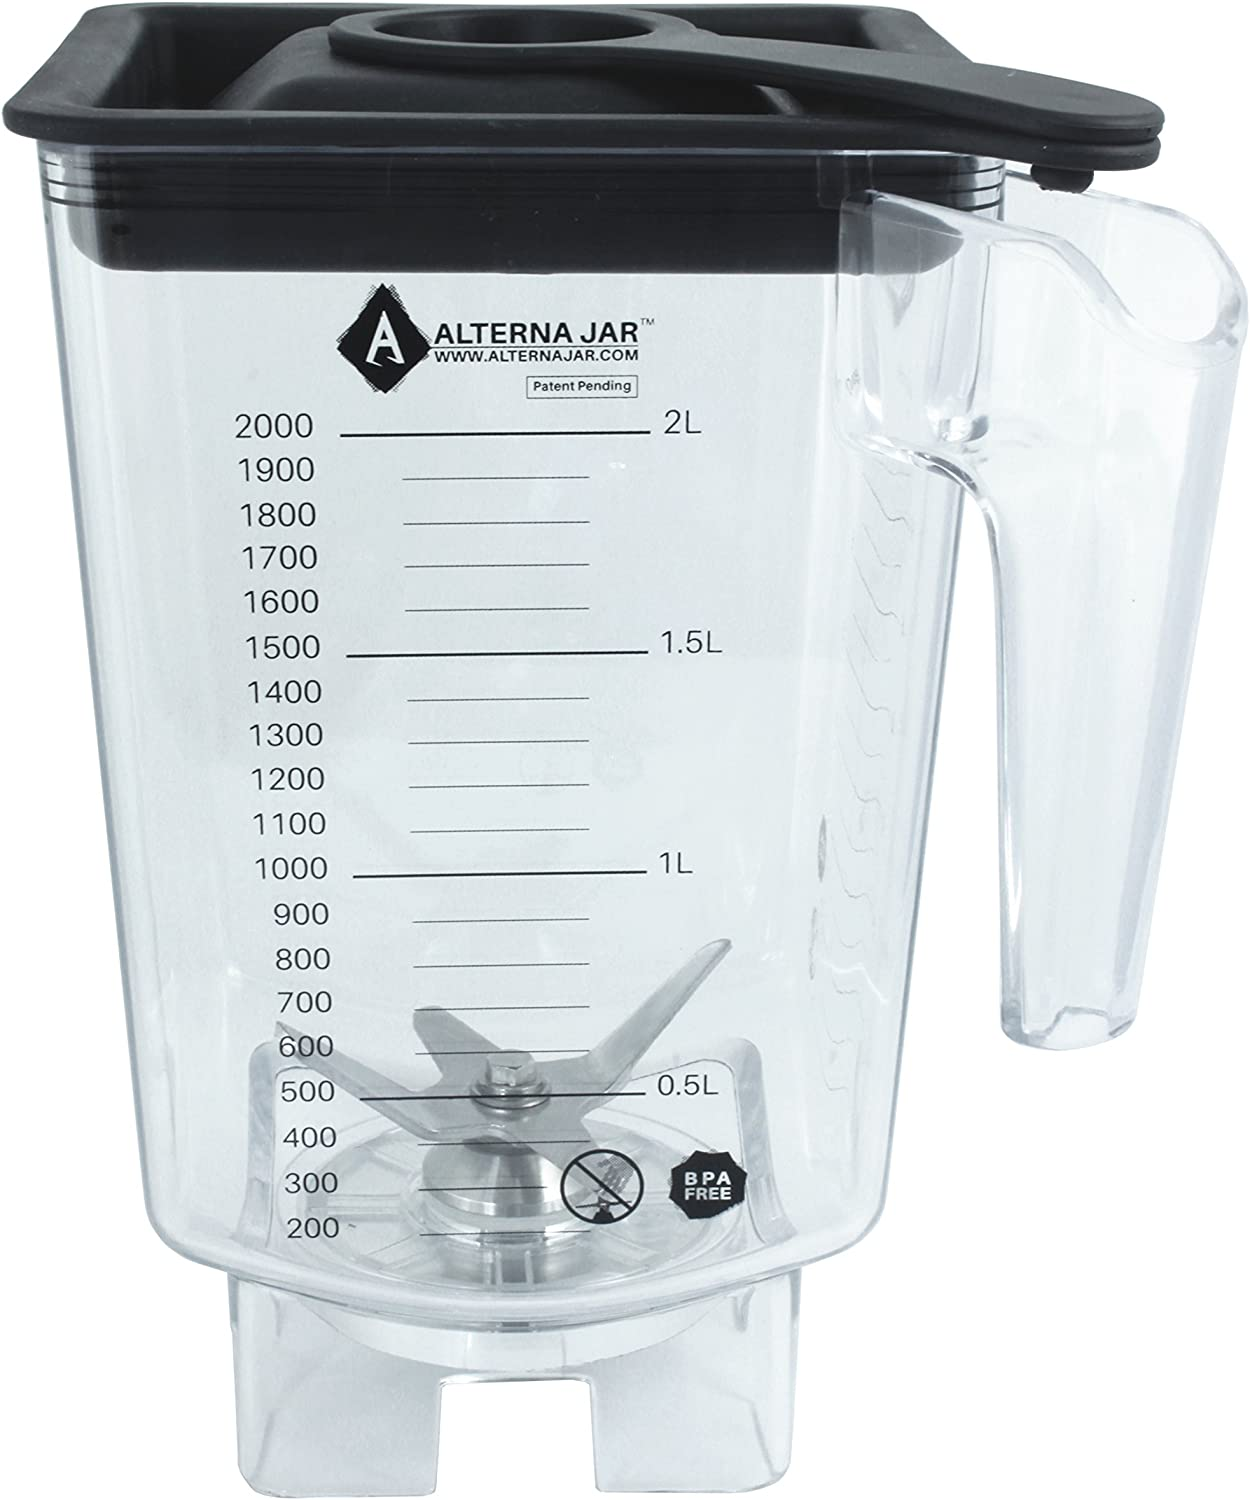 Alterna Jar - Aftermarket Replacement for Blendtec Jar – Fits Every Blendtec Blender Base - Removable Replaceable Blade Assembly for Cheap, Easy Repairs -Quality One-Piece Lid that Supports a Ta